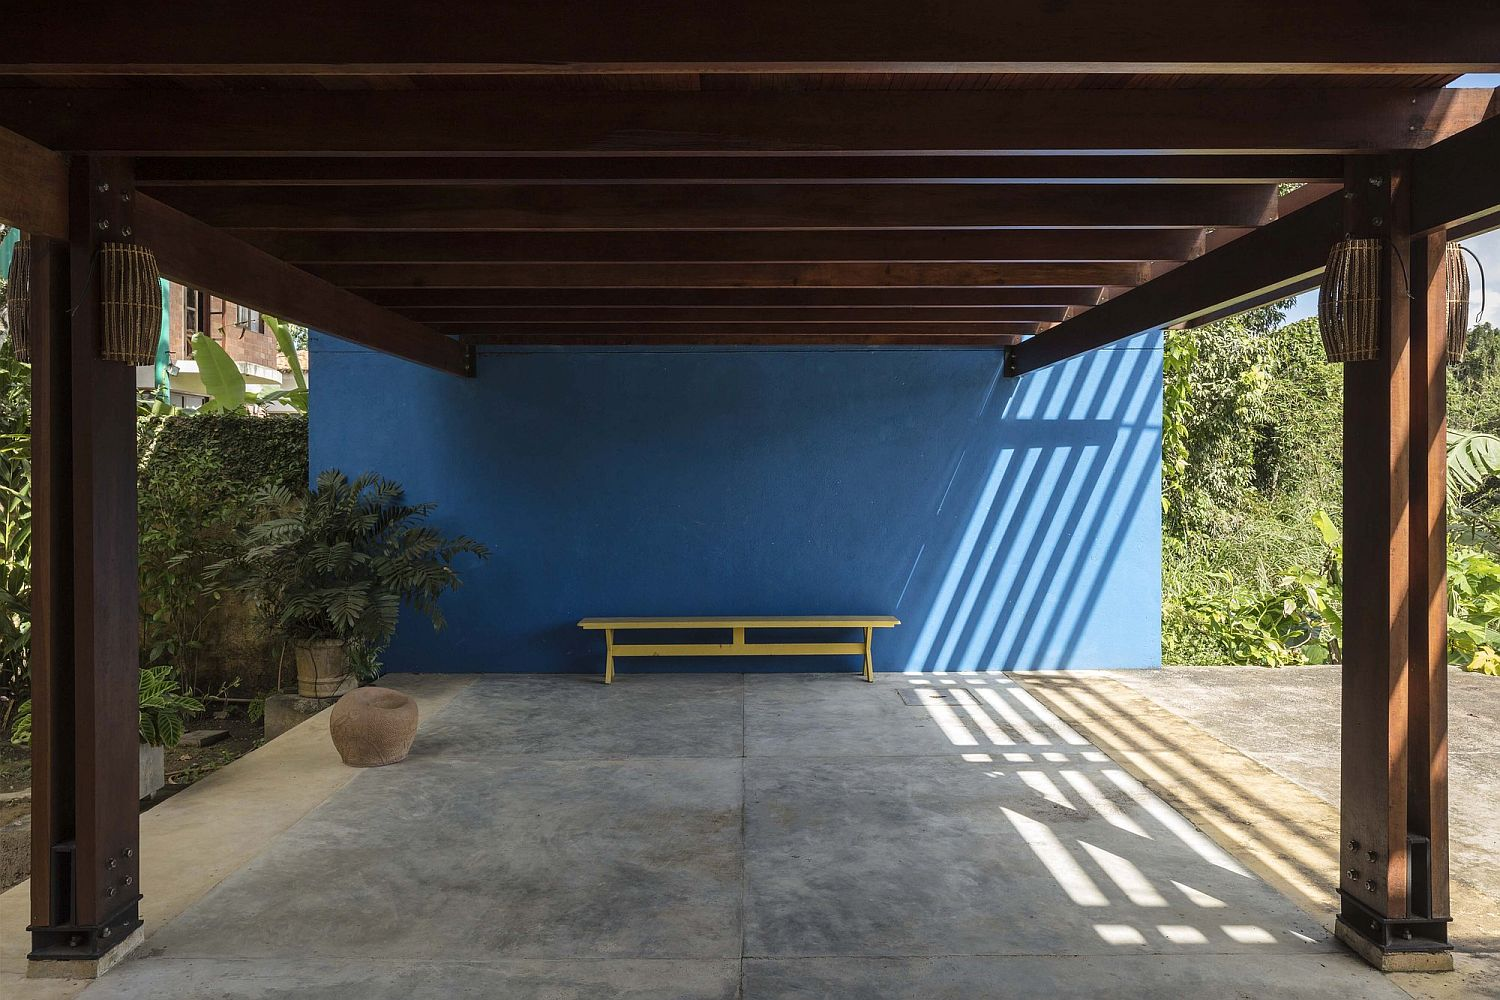 Pergola structure offers shade to those inside